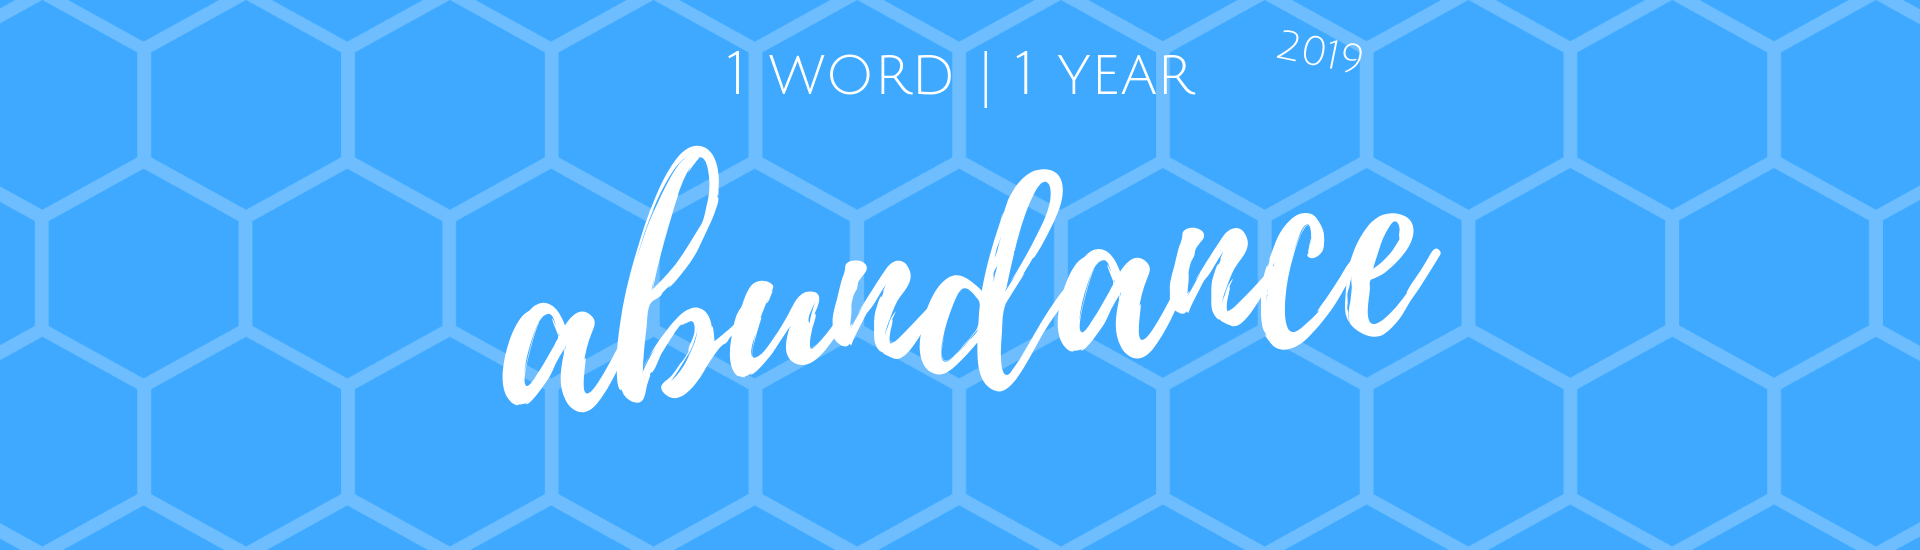 1 Word 1 Year 2019 Header